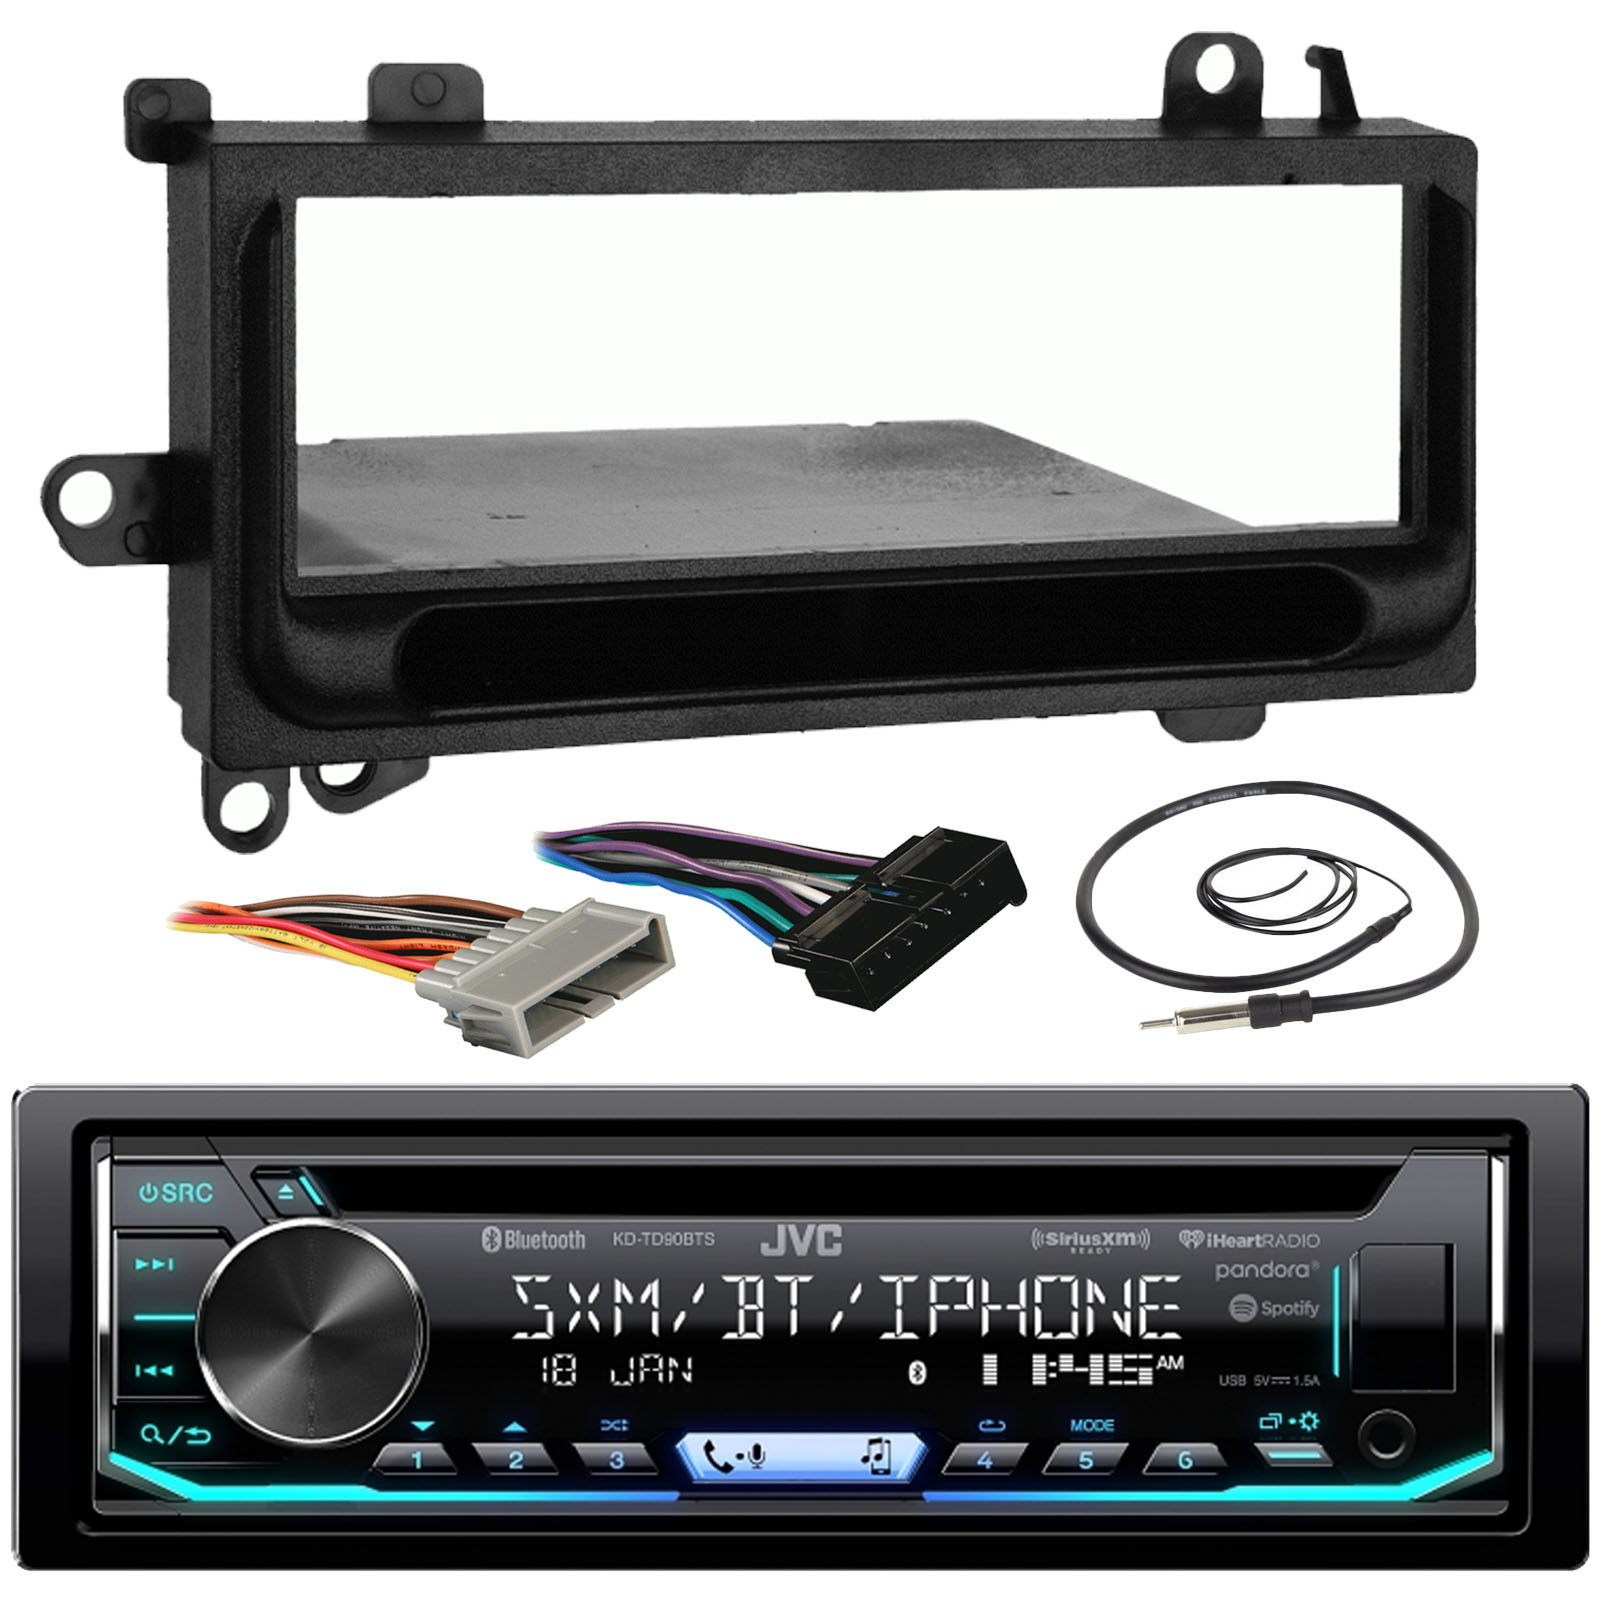 JVC KD-TD90BTS Car CD MP3 iPod Bluetooth Stereo Receiver Bundle Combo W/ Metra Installation Kit For 1974 and Up Chrysler/Dodge/Jeep Cars + Radio Wiring Harness + Enrock Antenna W/ Adapter Cable